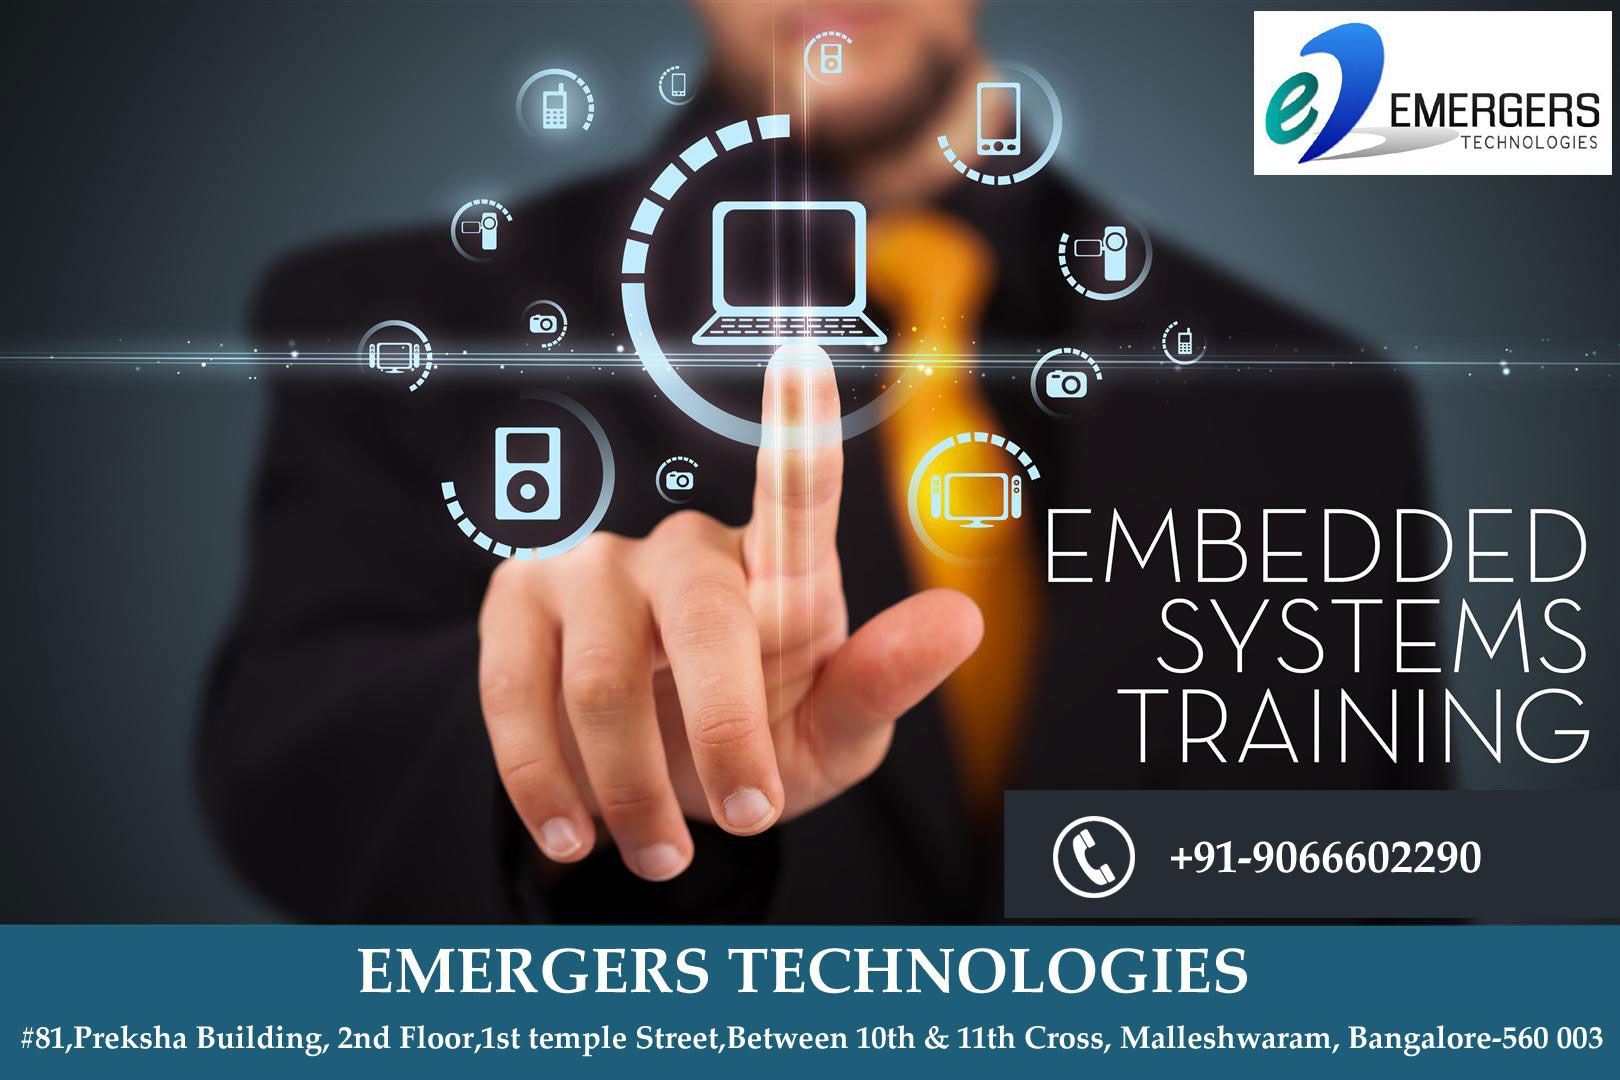 Emergers Is One Of The Best Embedded Systems Training Institute In Bangalore That Offers Website Design Web Development Design Information Technology Services